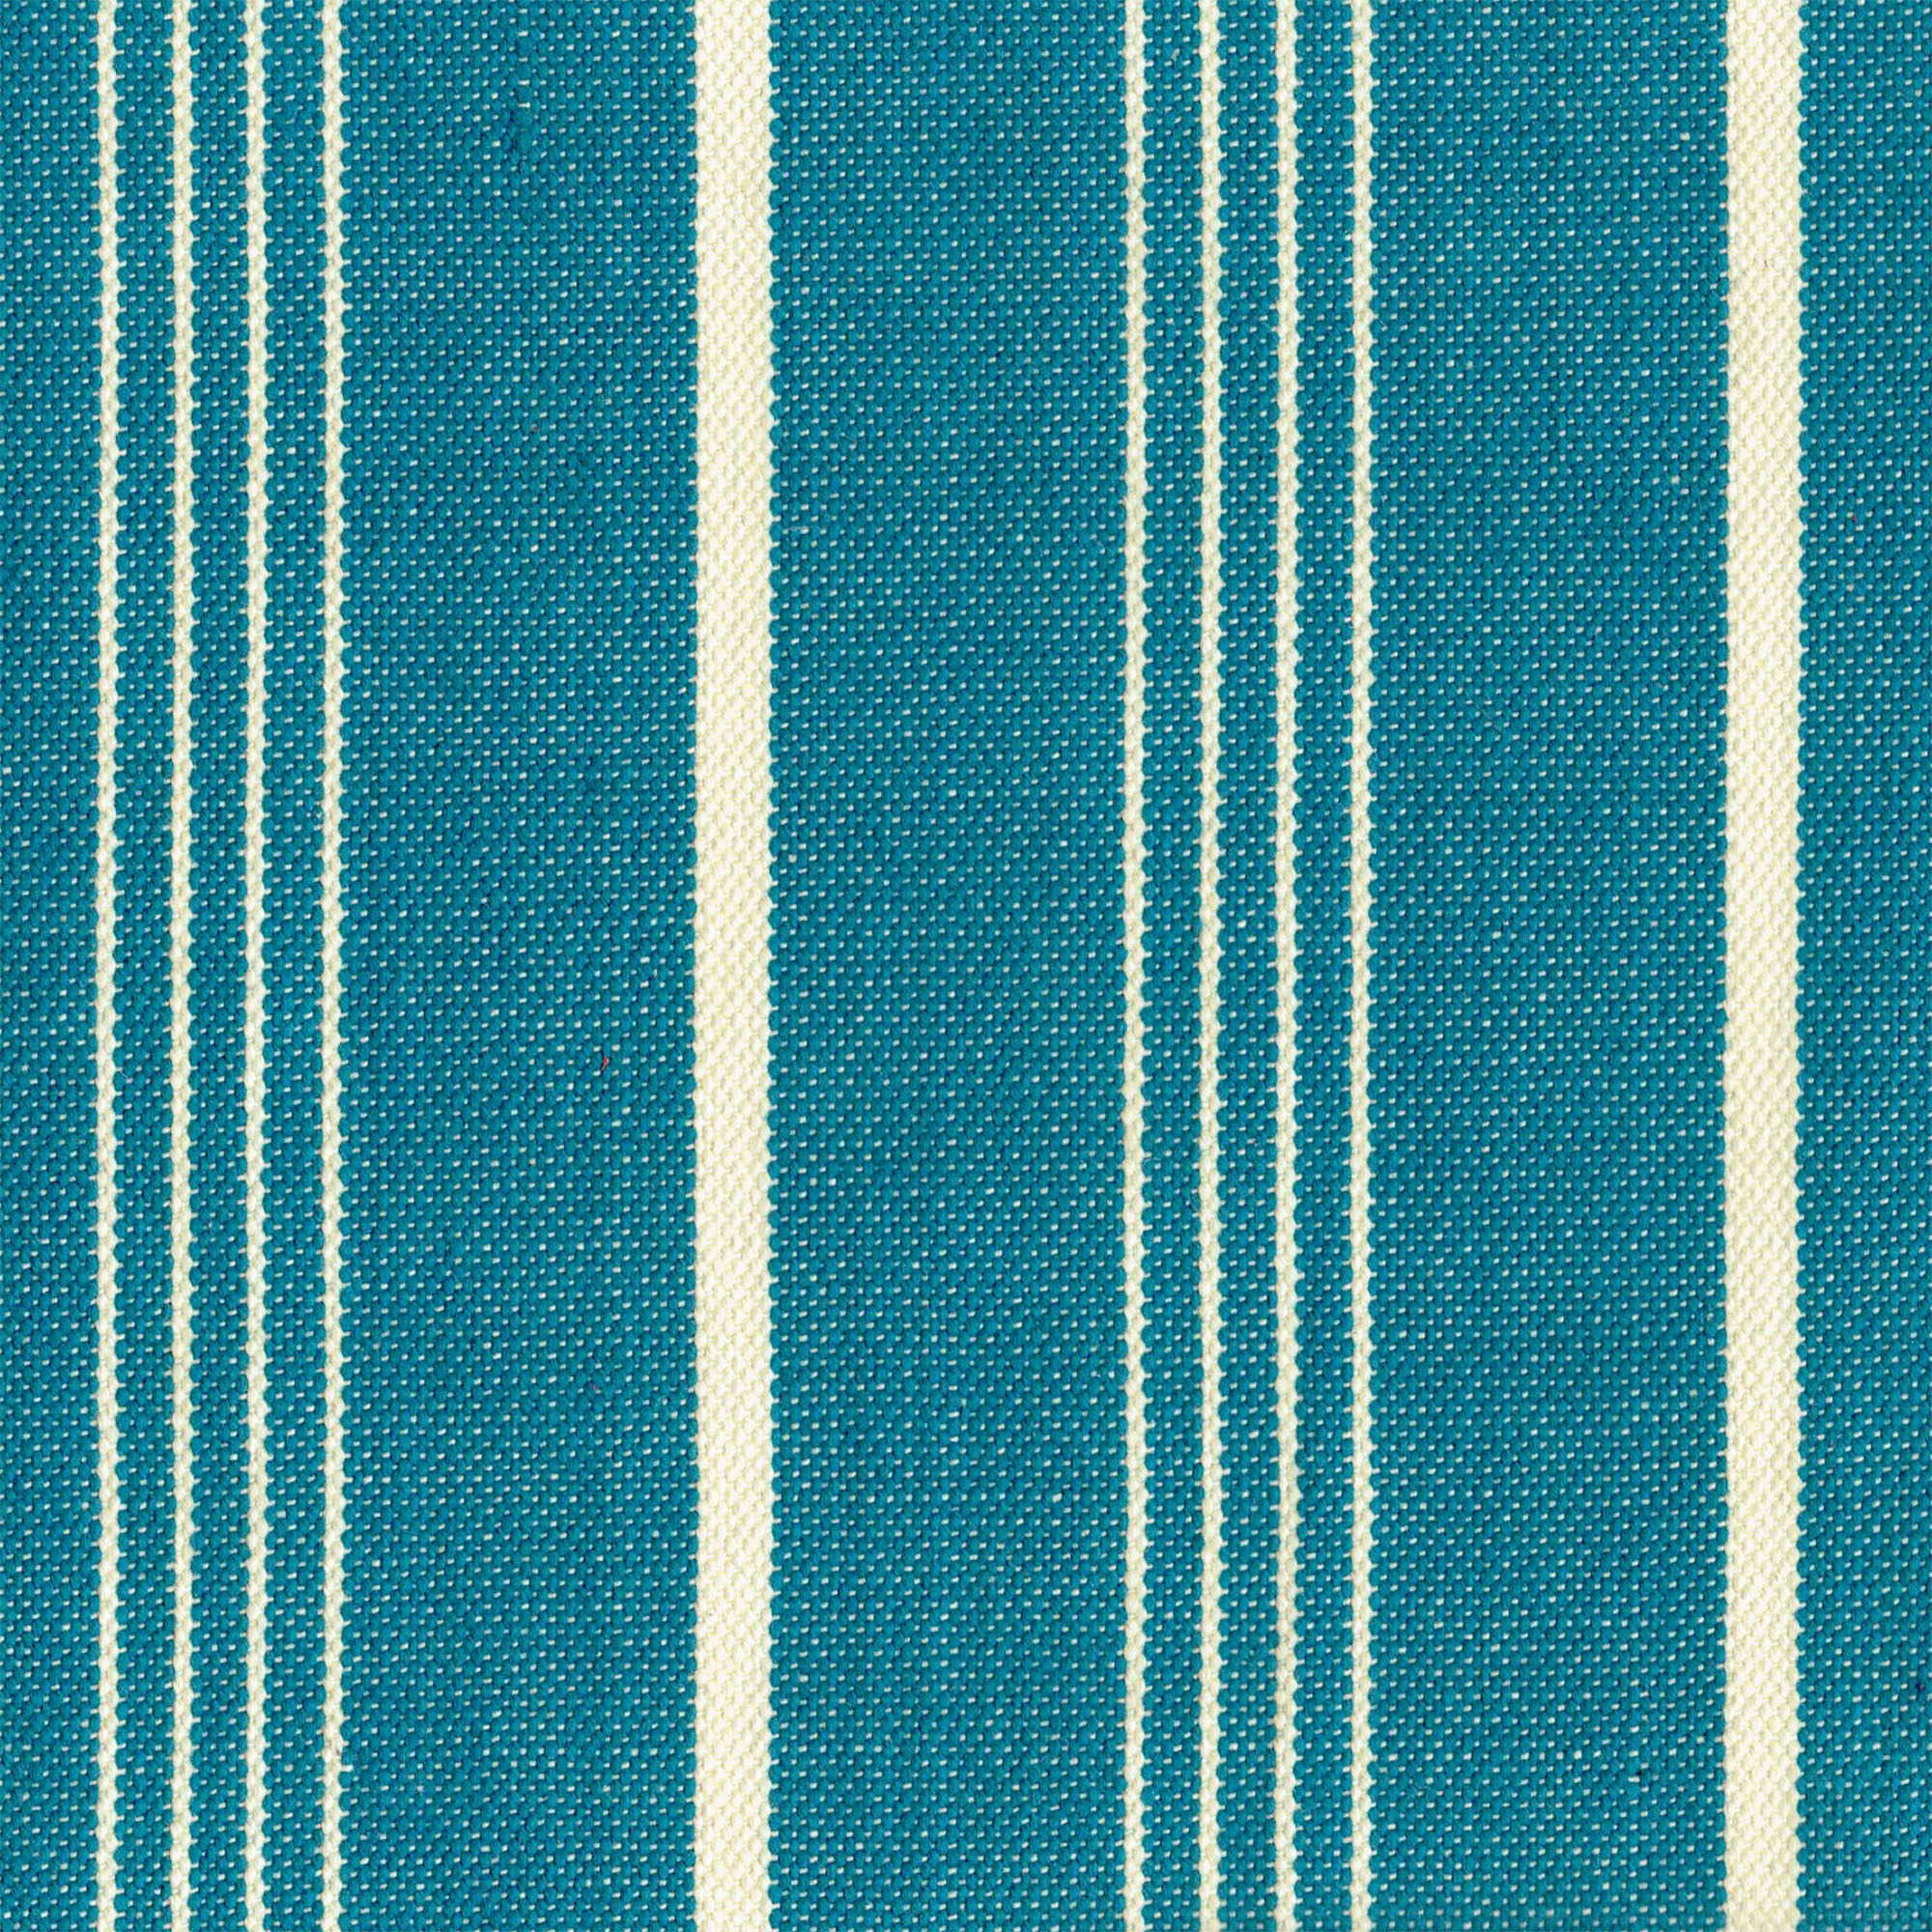 LINEN COTTON OCEAN AND PEARL STRIPE SWATCH